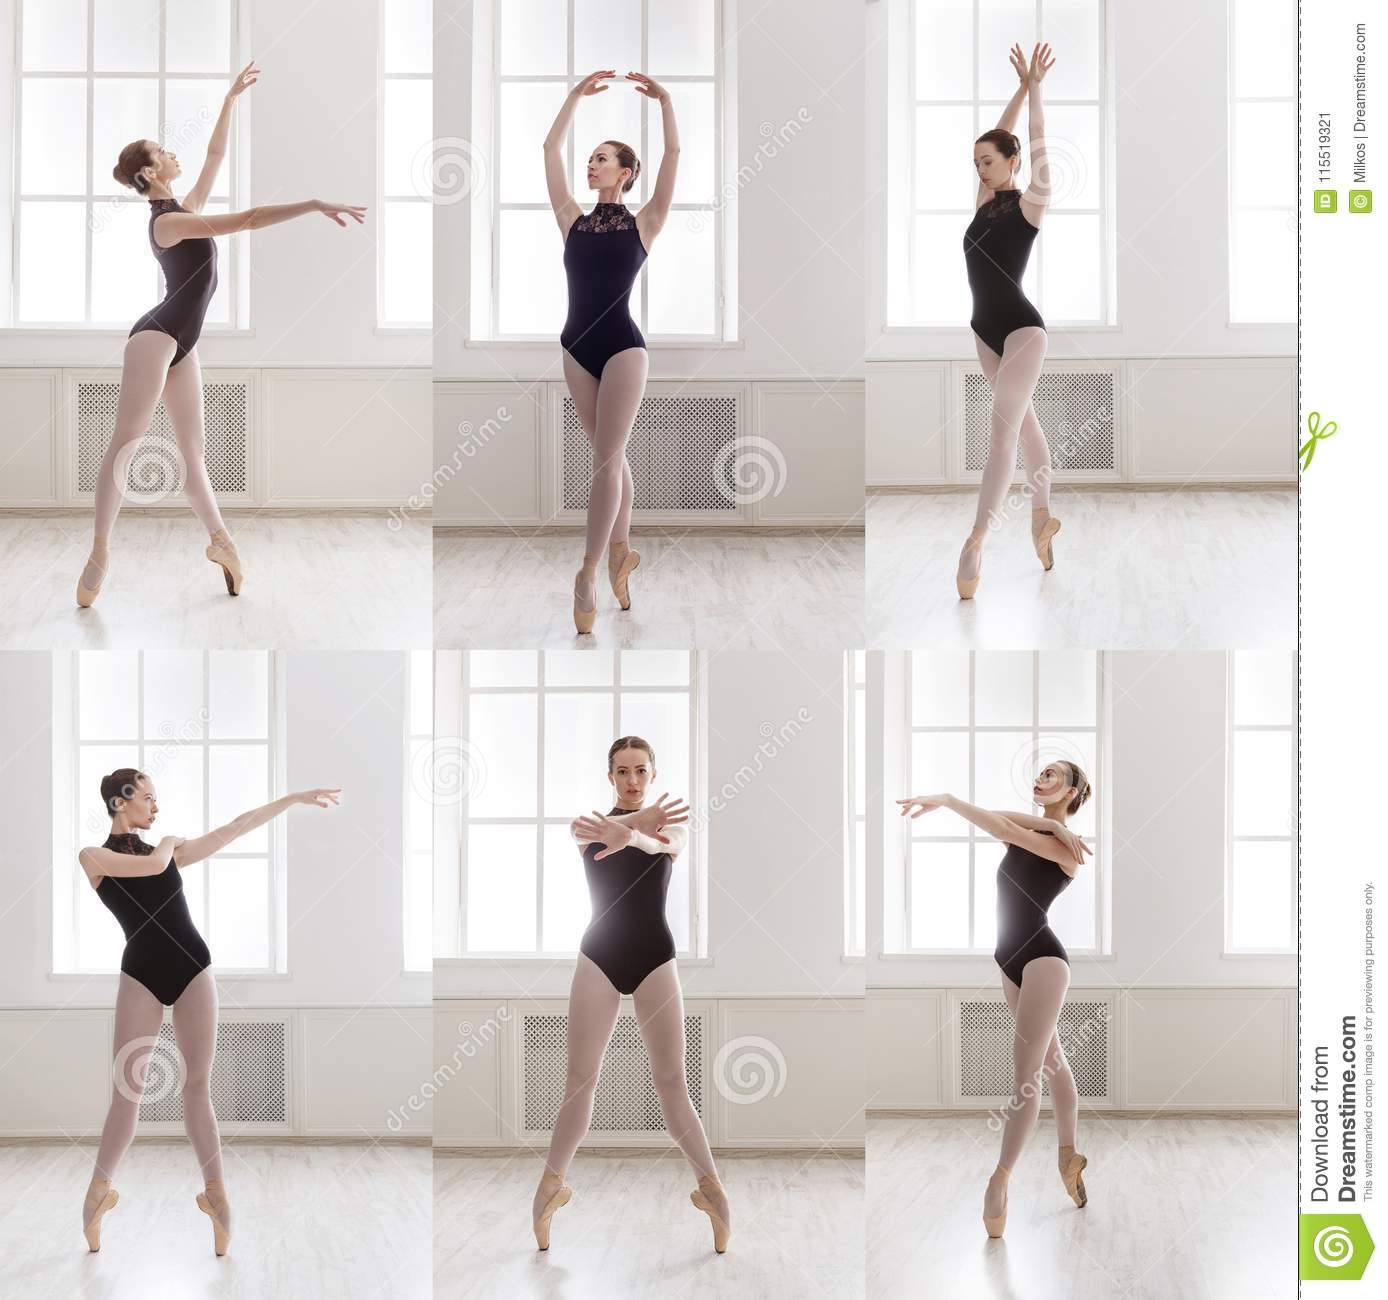 Set Of Young Ballerina Standing In Ballet Poses Stock Image Image Of Adult Black 115519321